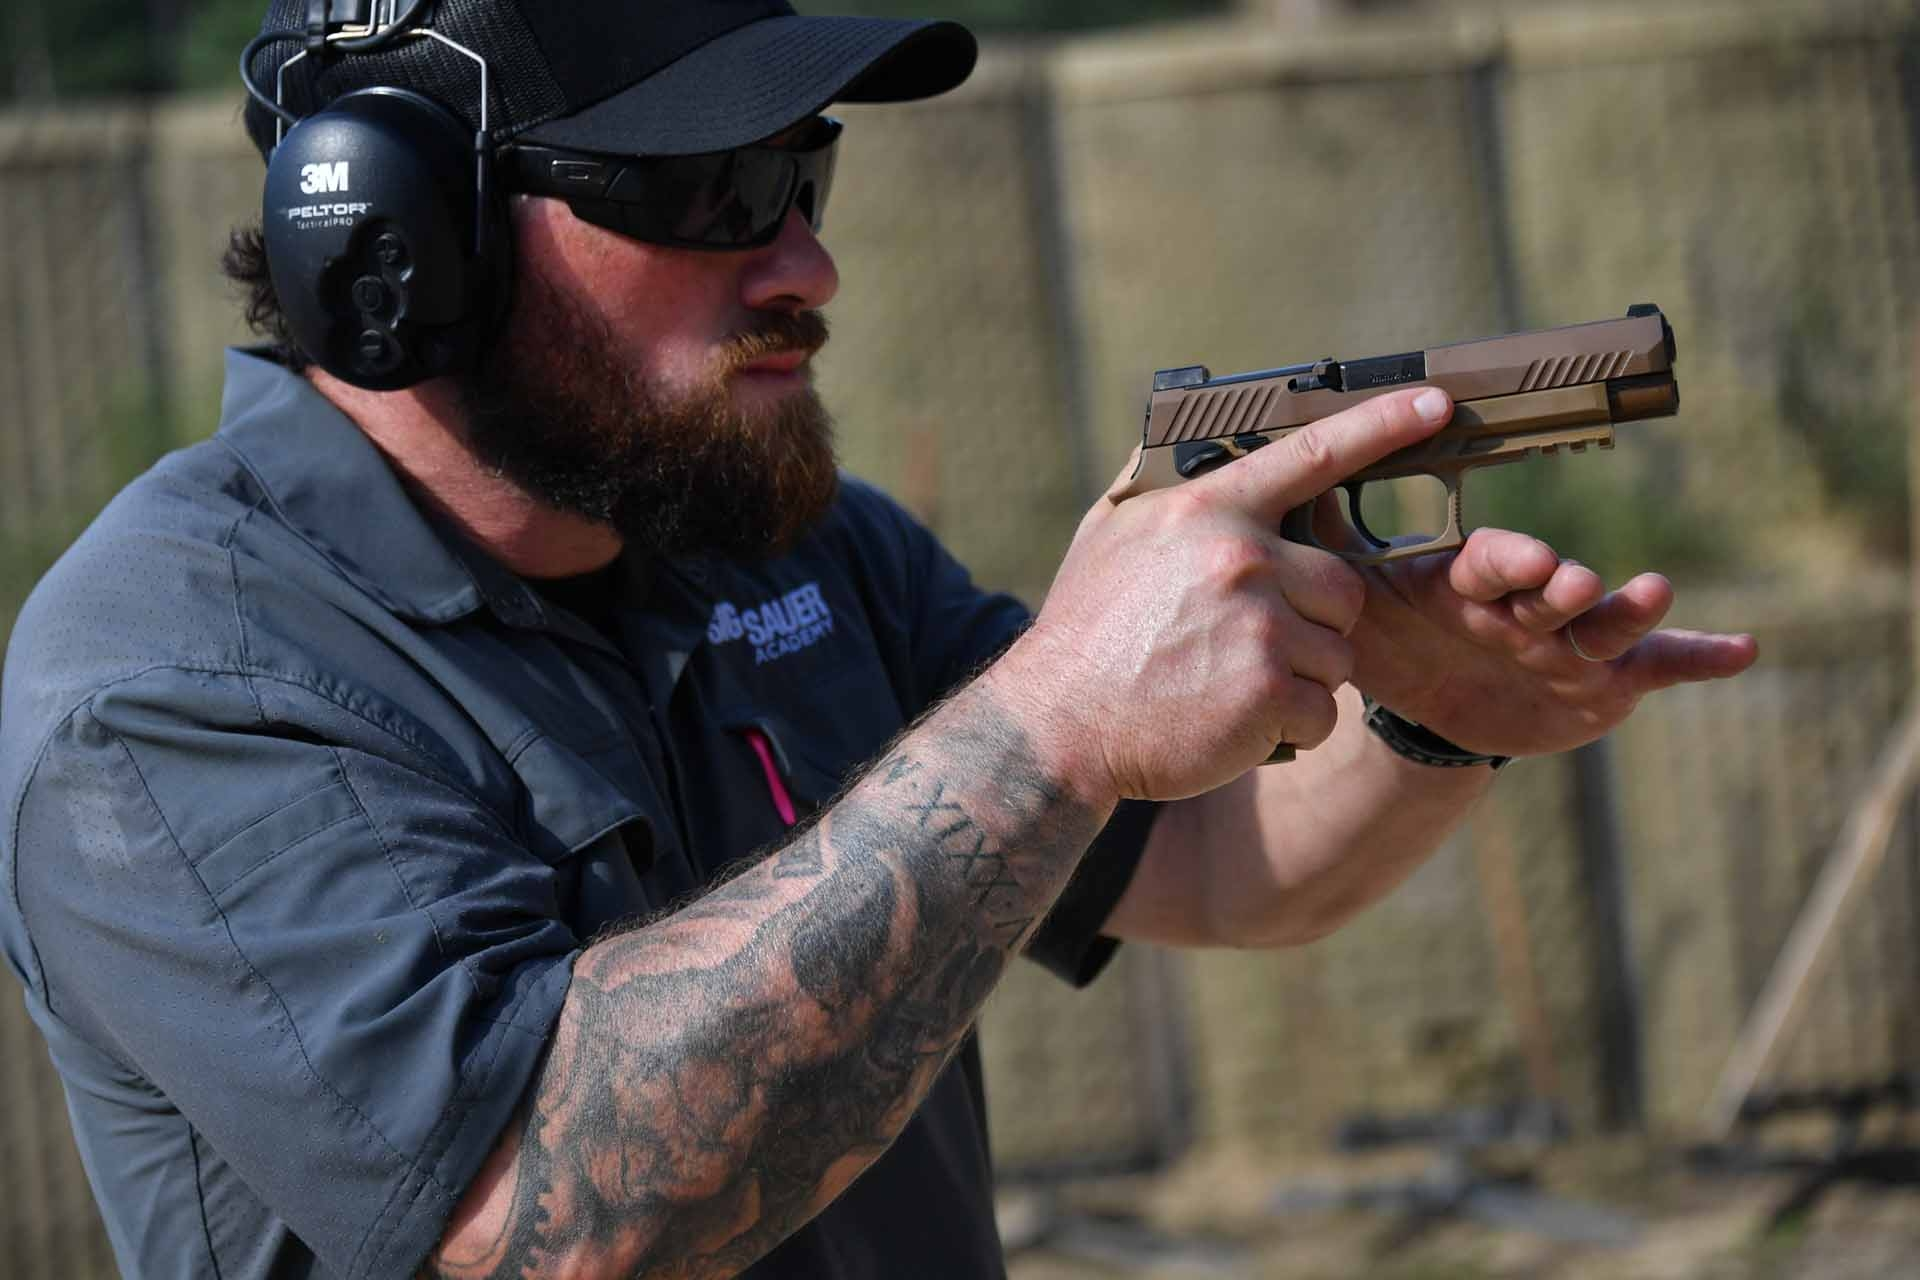 Fire testing of the SIG Sauer P320-M17 pistol